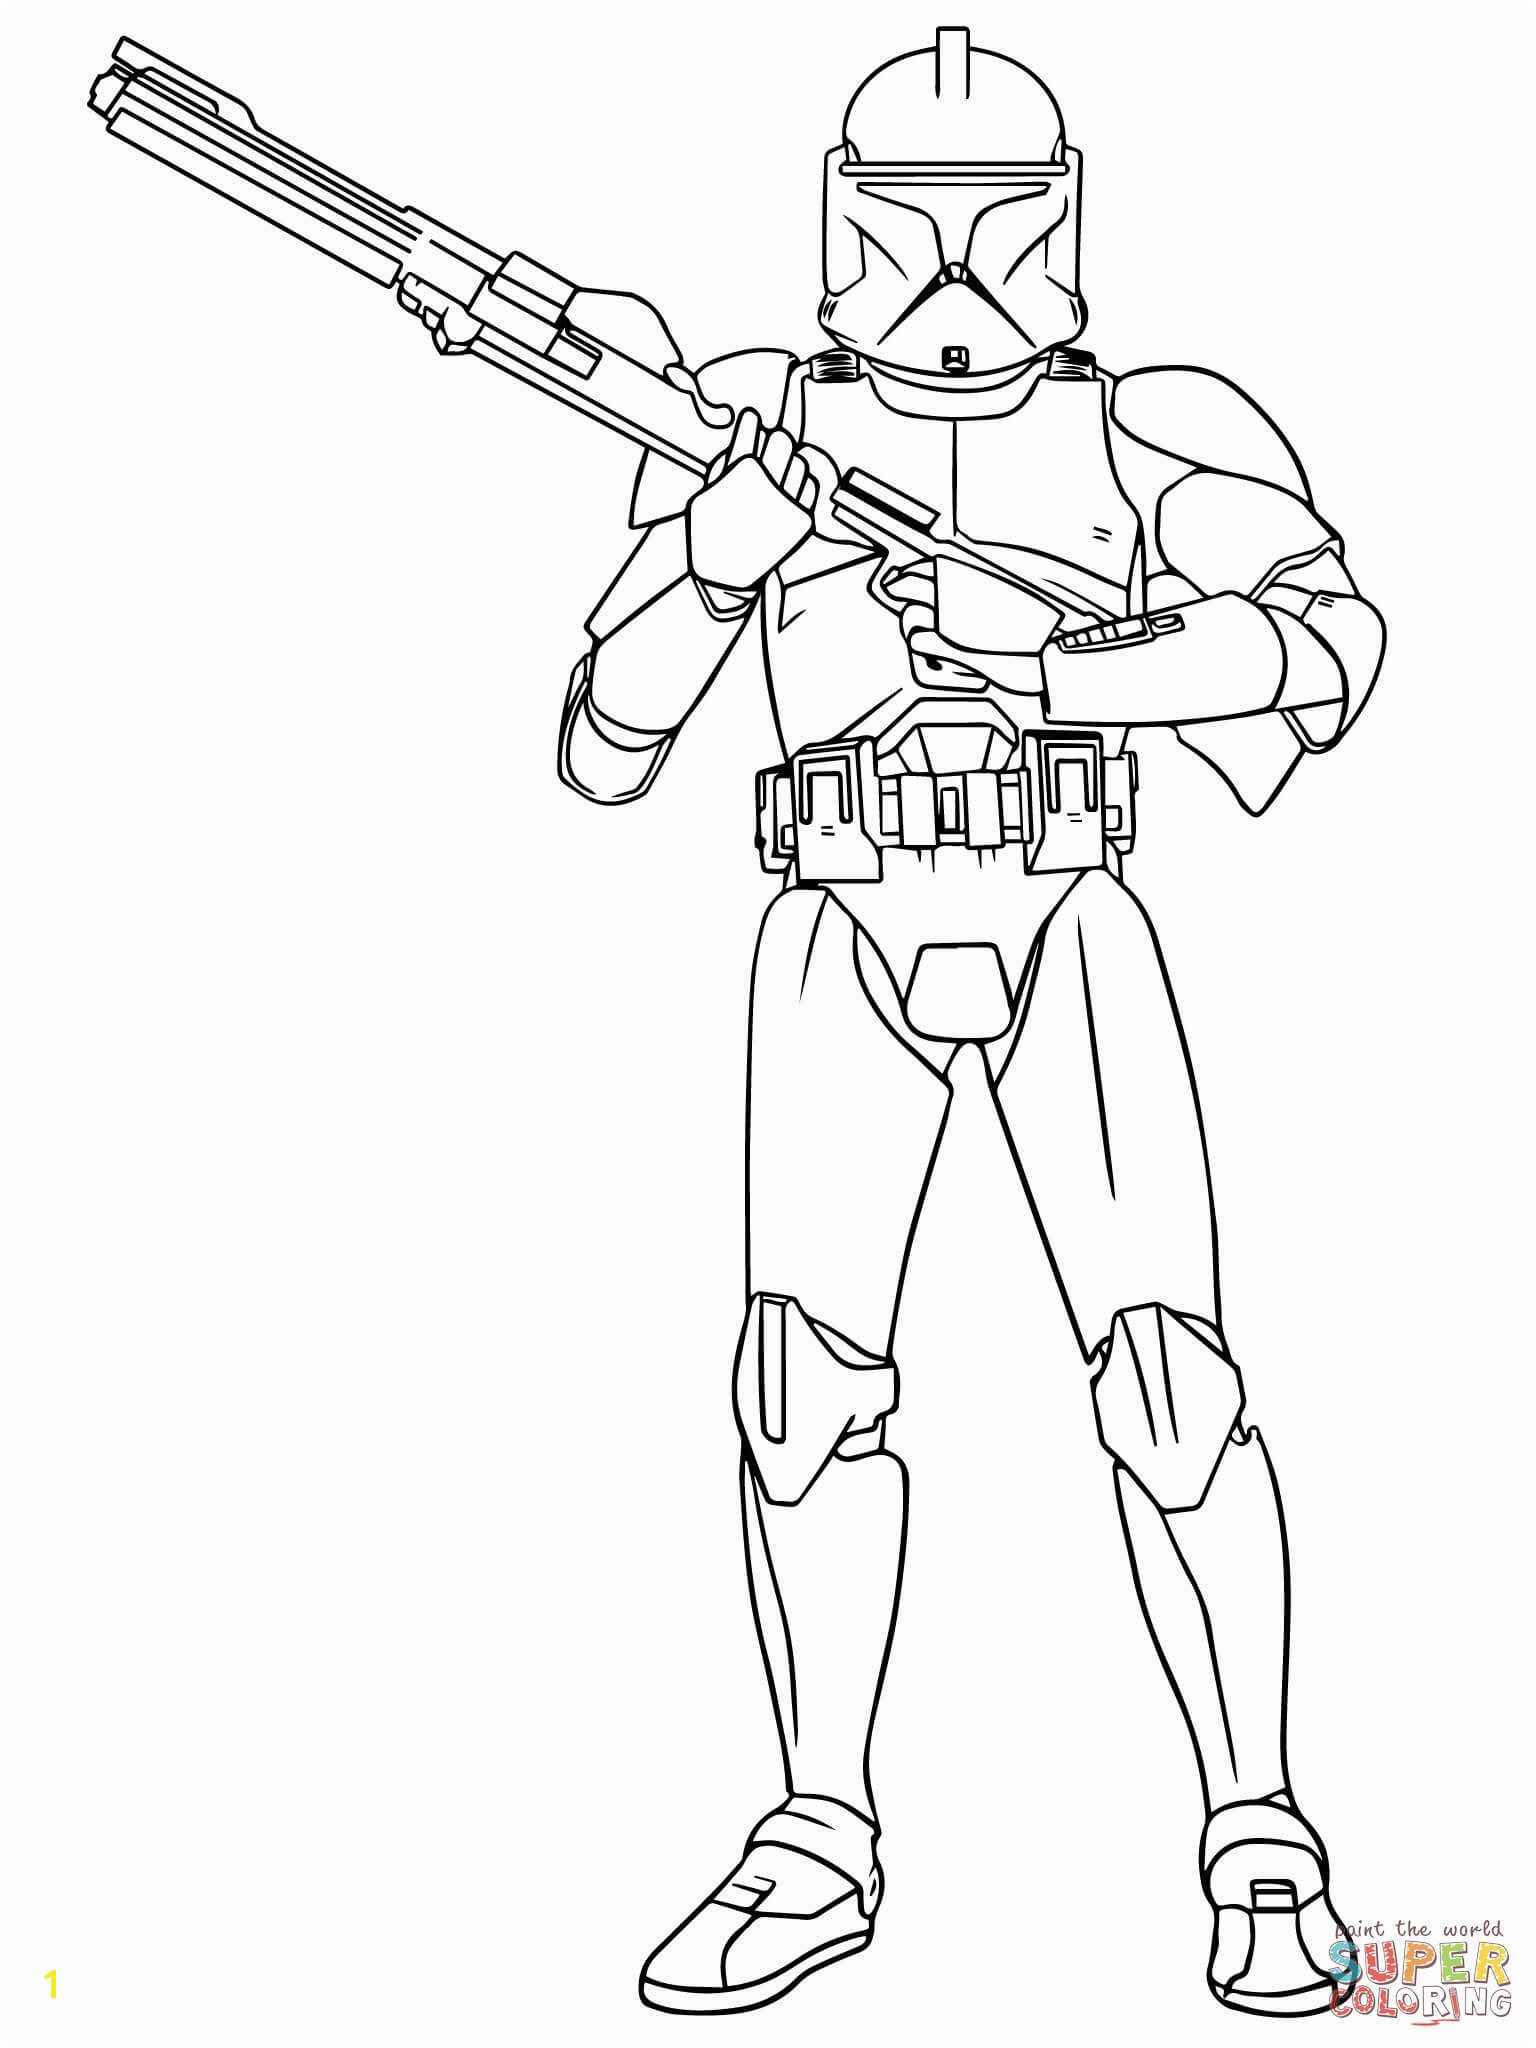 Star Wars Coloring Pages for Kids Star Wars Clone Trooper Coloring Pages Download